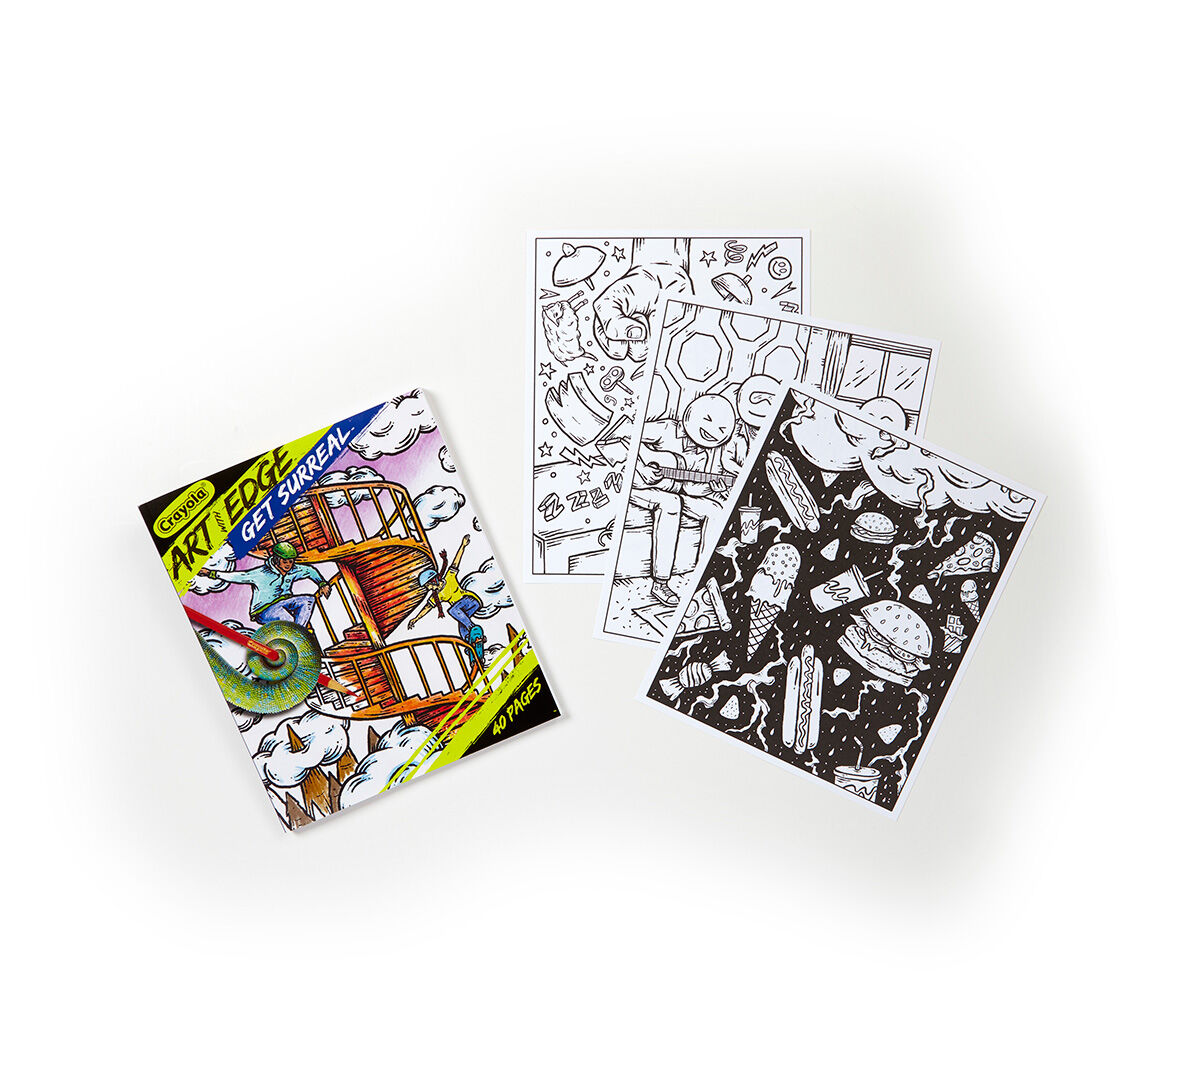 <p>The surreal, dreamlike art in these Crayola Art with Edge coloring pages become bold, intense images that pop off the page when brought to life with color. Use your imagination and artistic instincts to add color to these designs and enjoy the unexpected, mind-bending results.</p>